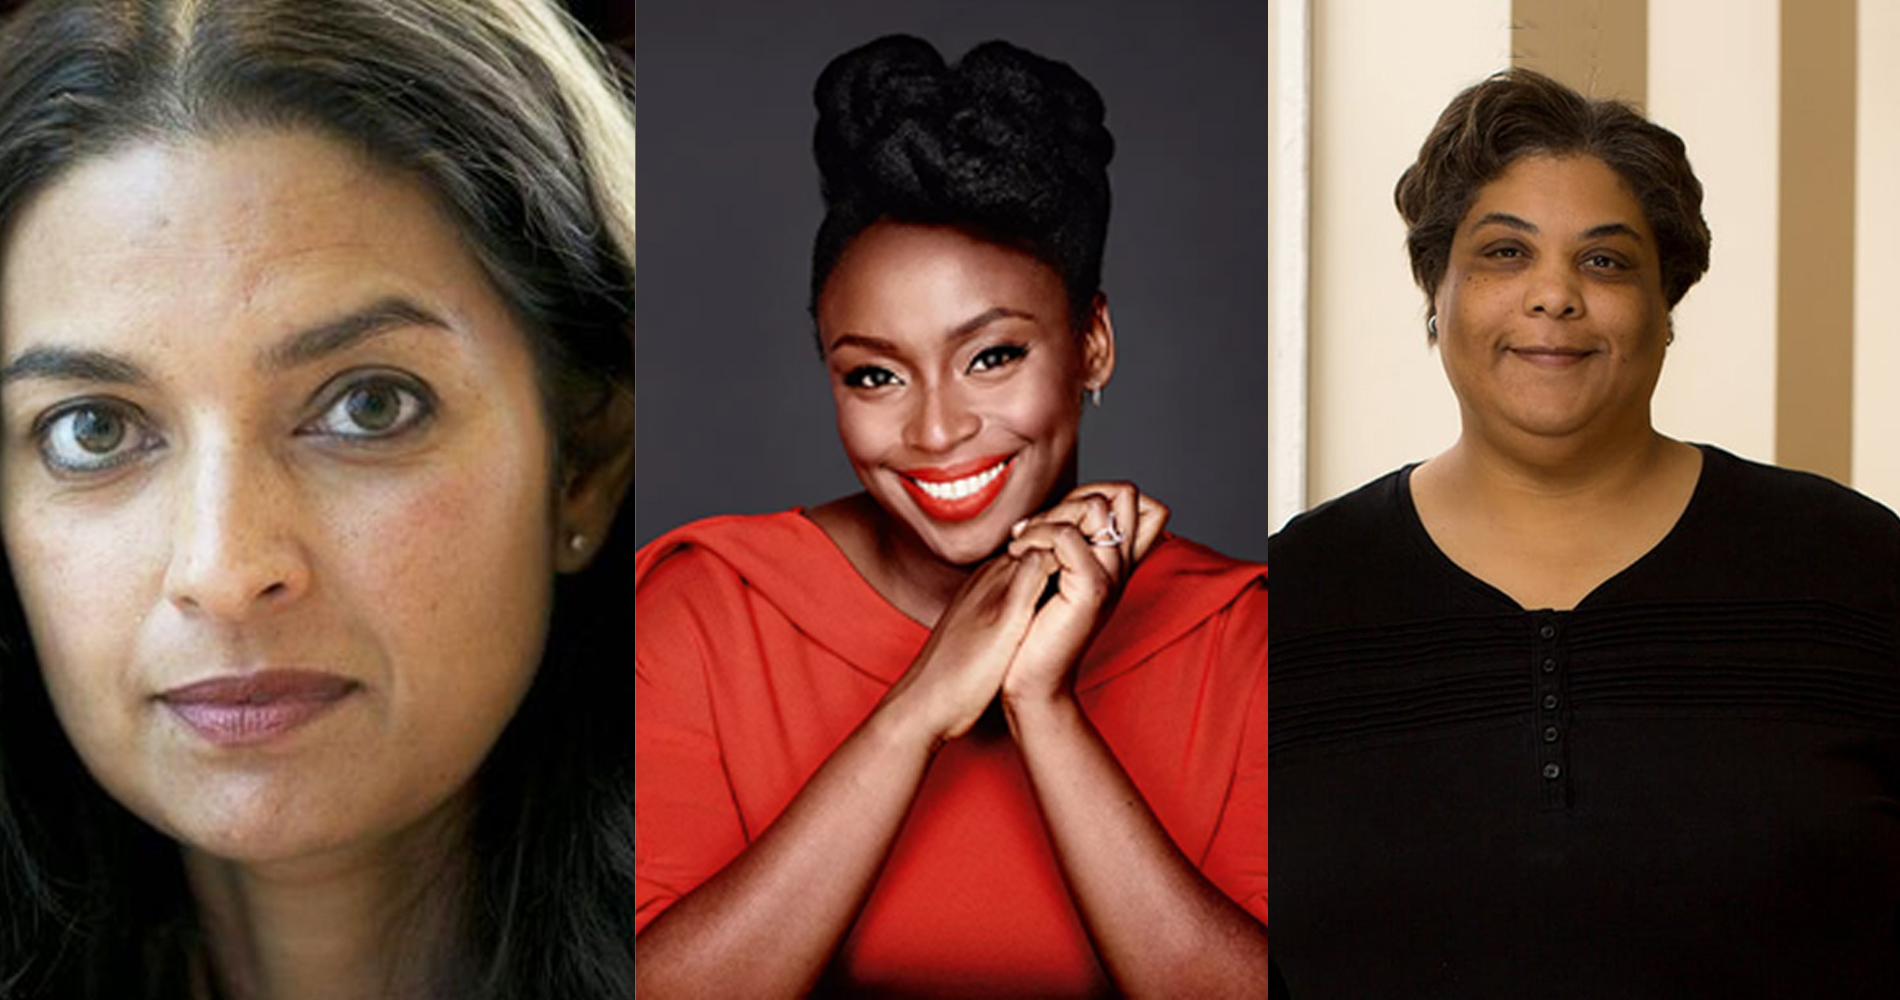 LOOKING FOR NEW READS? THESE WOMEN ARE TELLING STORIES YOU'VE NEVER HEARD BEFORE.